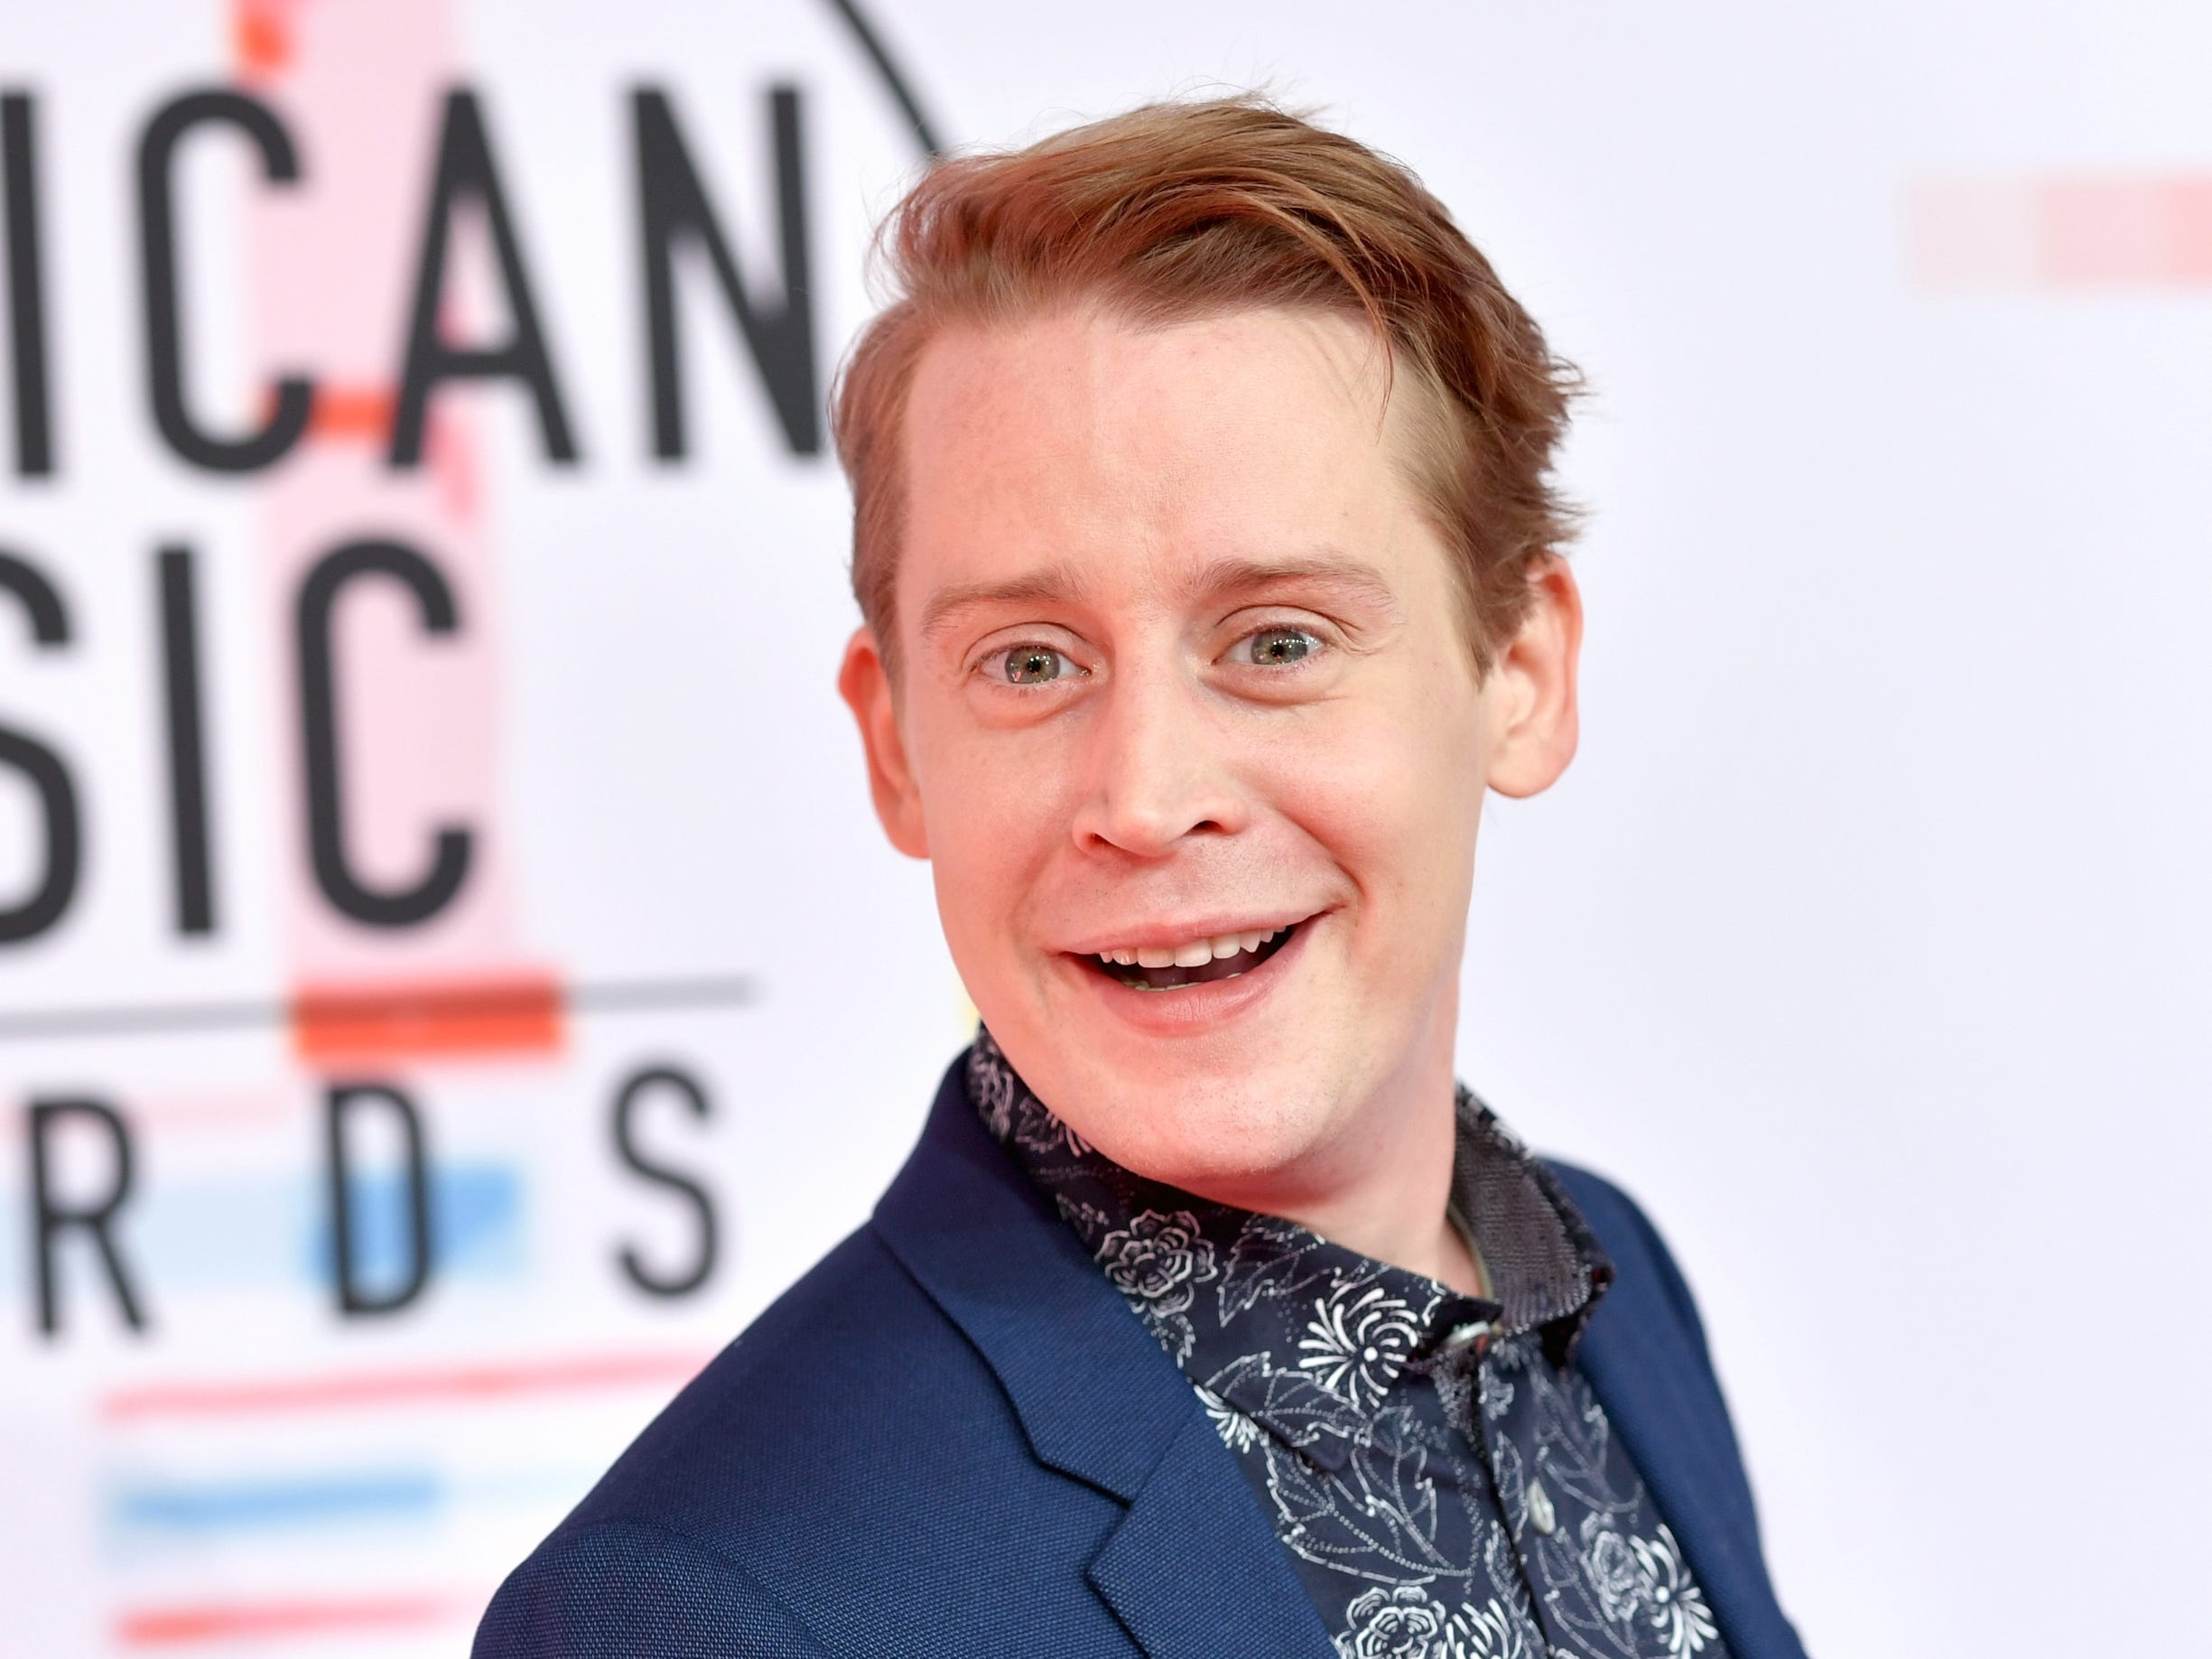 Macaulay Culkin at the 2018 American Music Awards on Oct. 9, 2018 in Los Angeles.